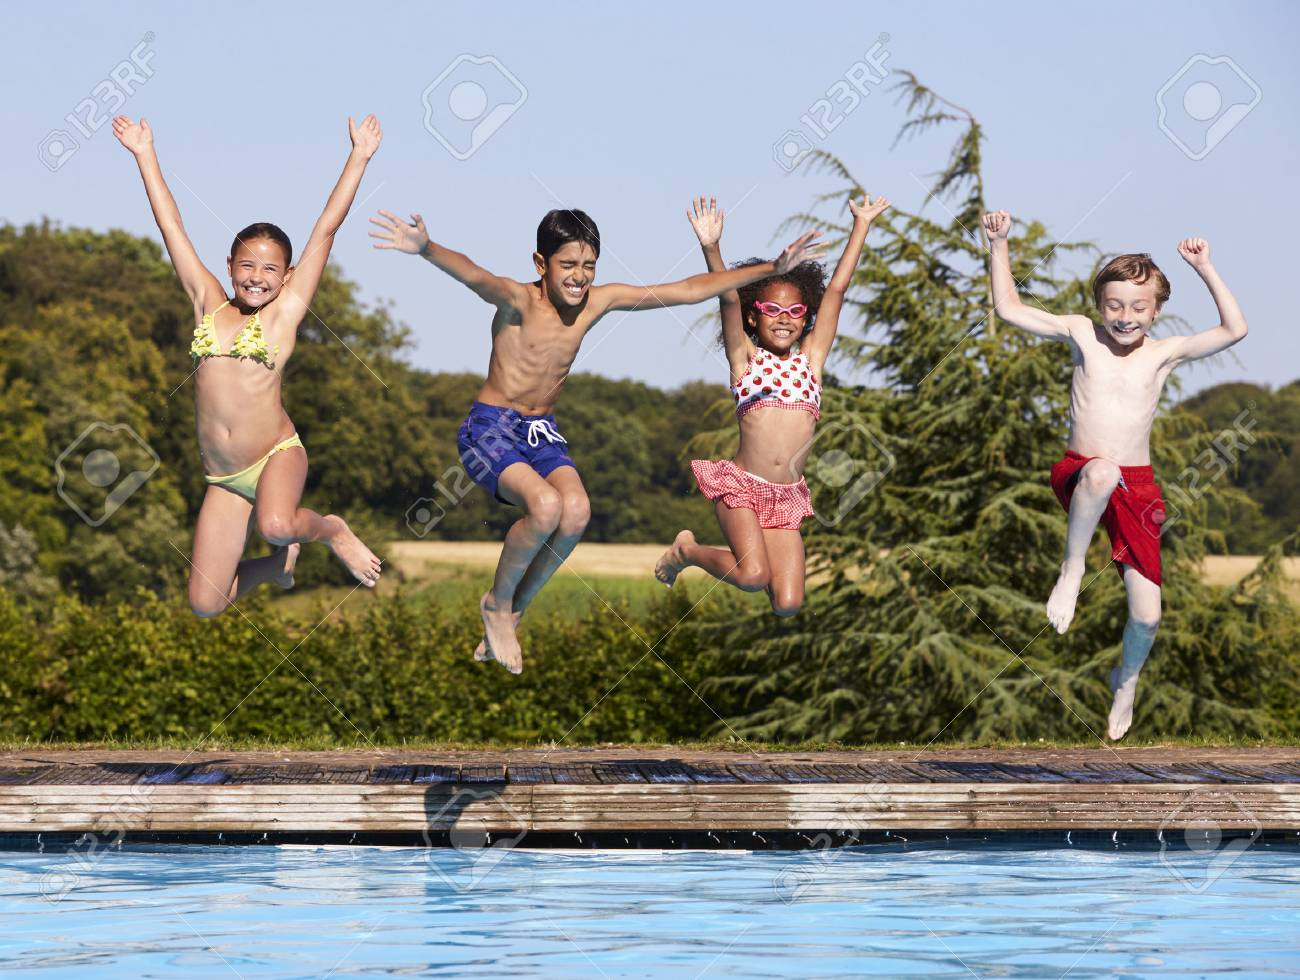 Image result for kids jumping into a pool